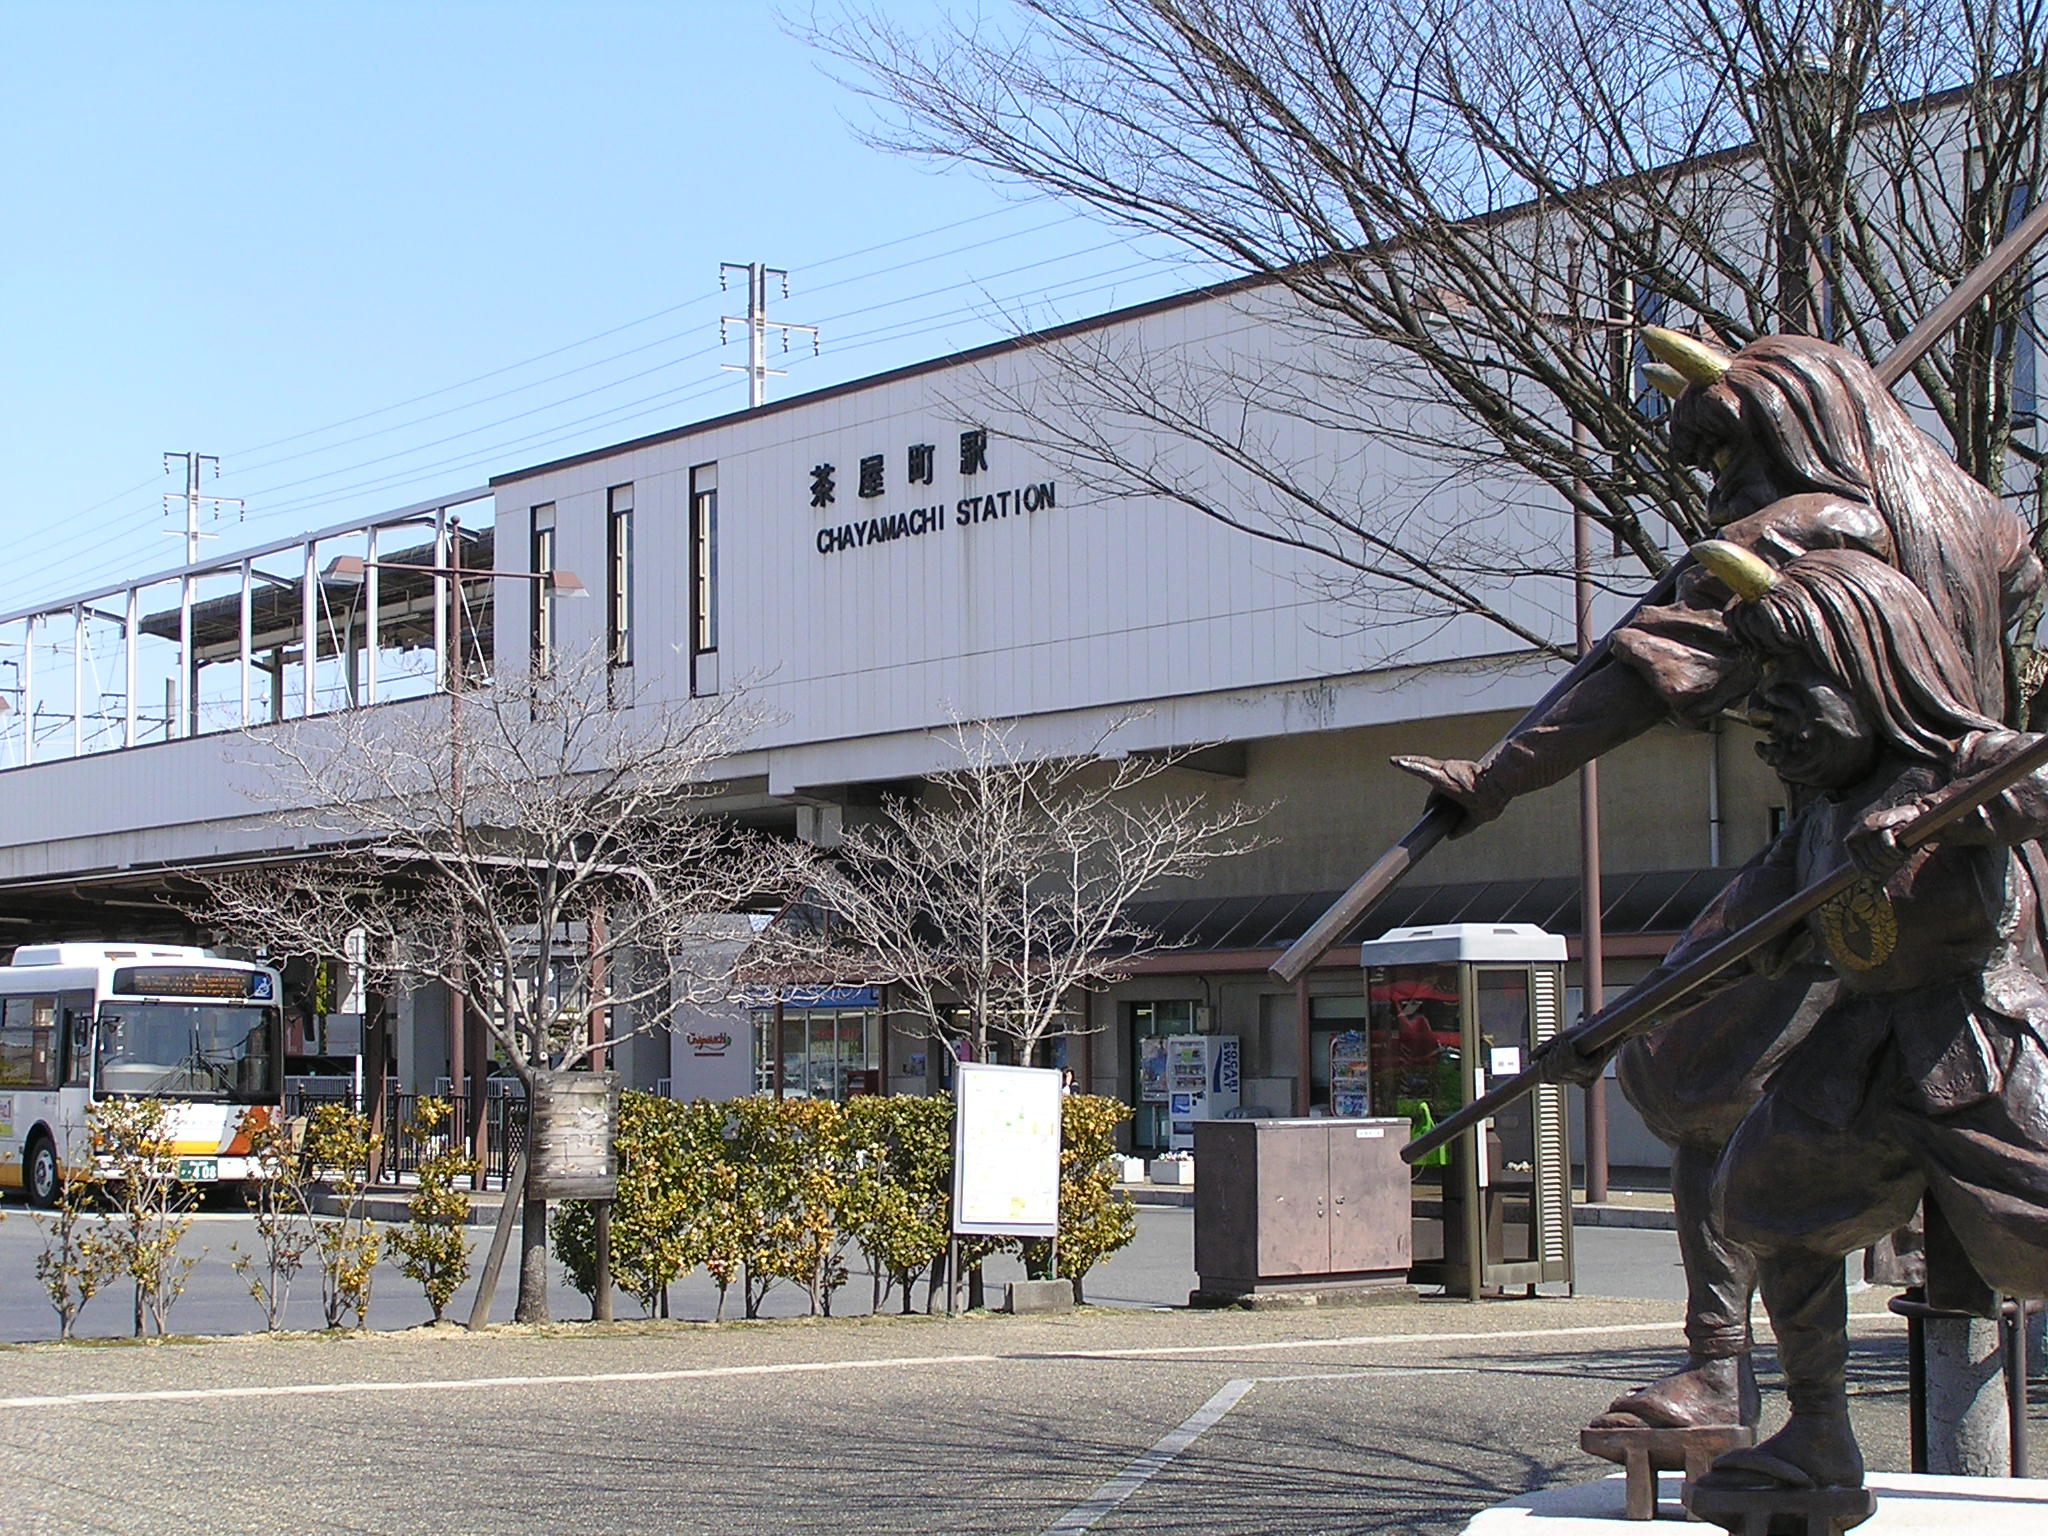 https://upload.wikimedia.org/wikipedia/commons/e/e9/Chayamati_station_west_entrance.JPG